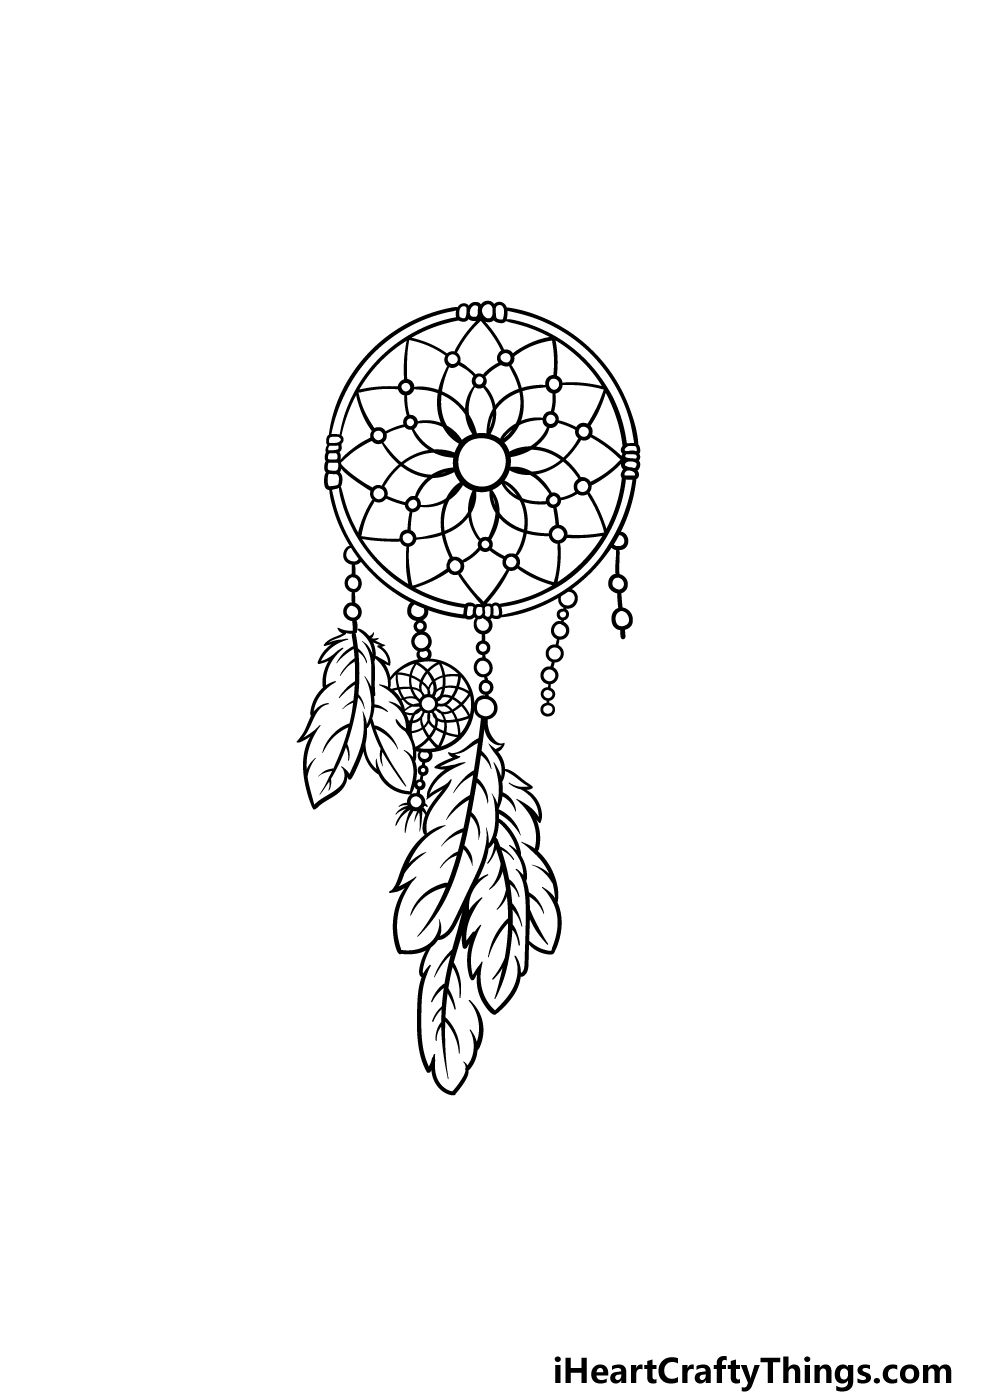 drawing dream catcher step 6